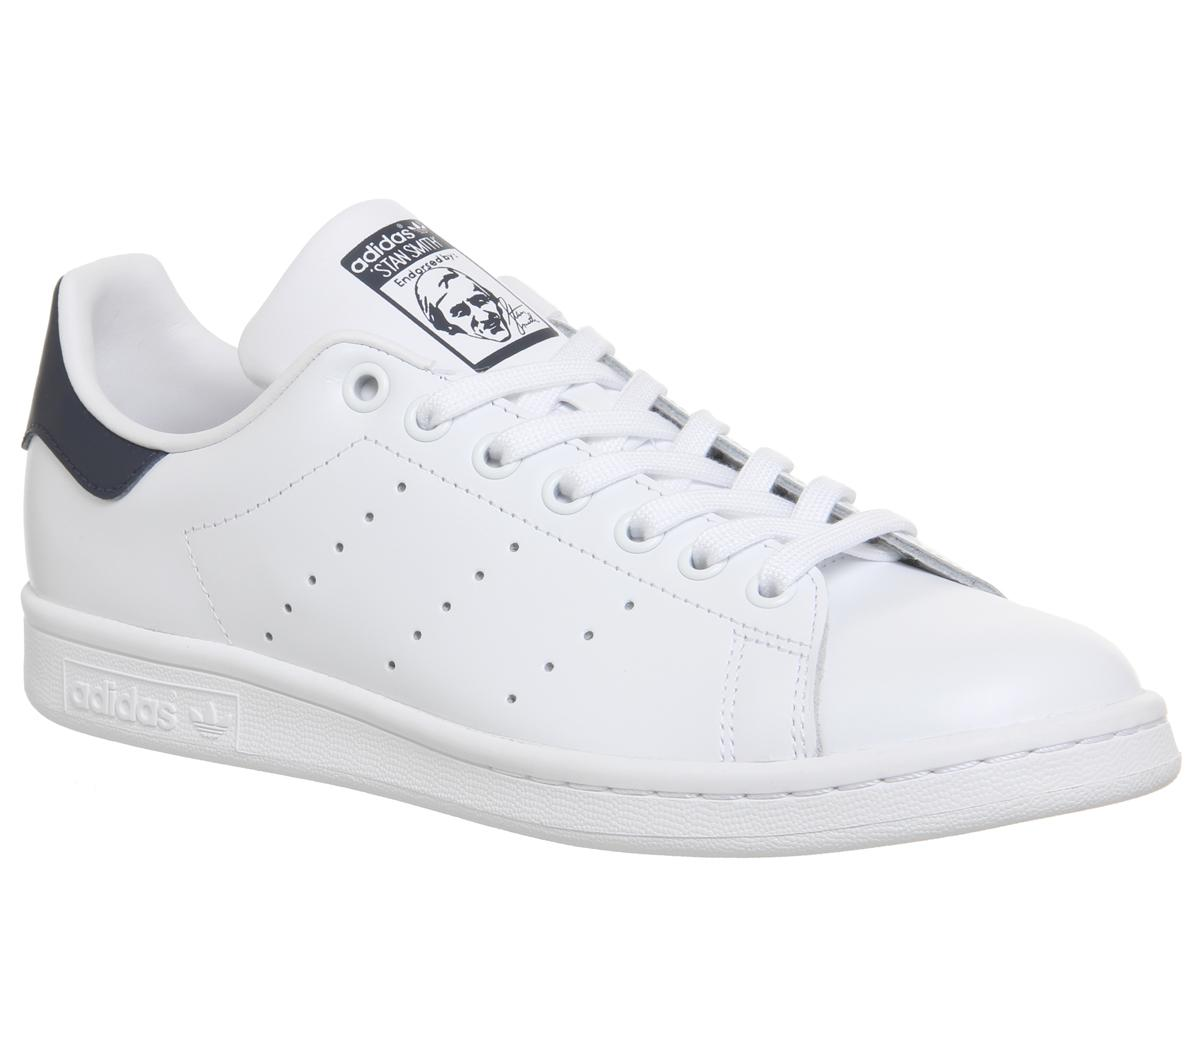 adidas stan smith blue white off 56% skolanlar.nu